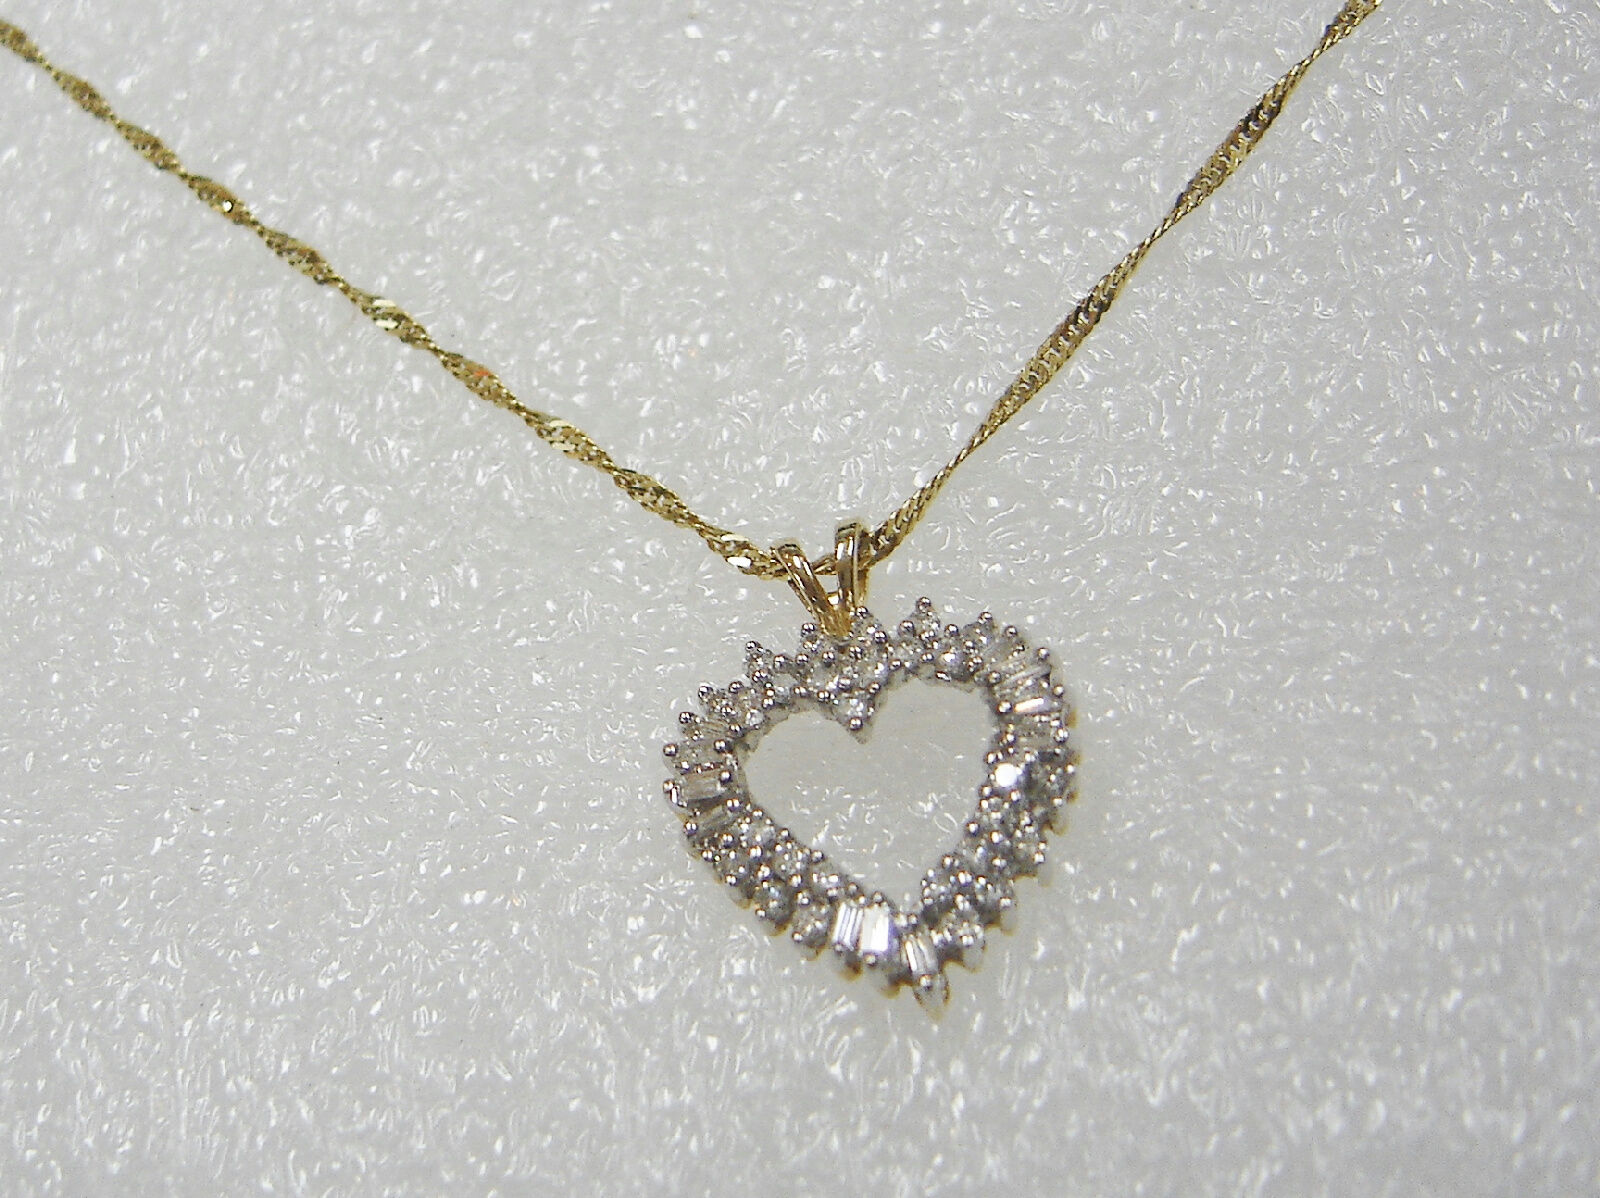 14k yellow gold 38 diamond 12 carat heart pendant necklace 18 14k yellow gold 38 diamond 12 carat heart pendant necklace 18 inch chain n361 t mozeypictures Gallery